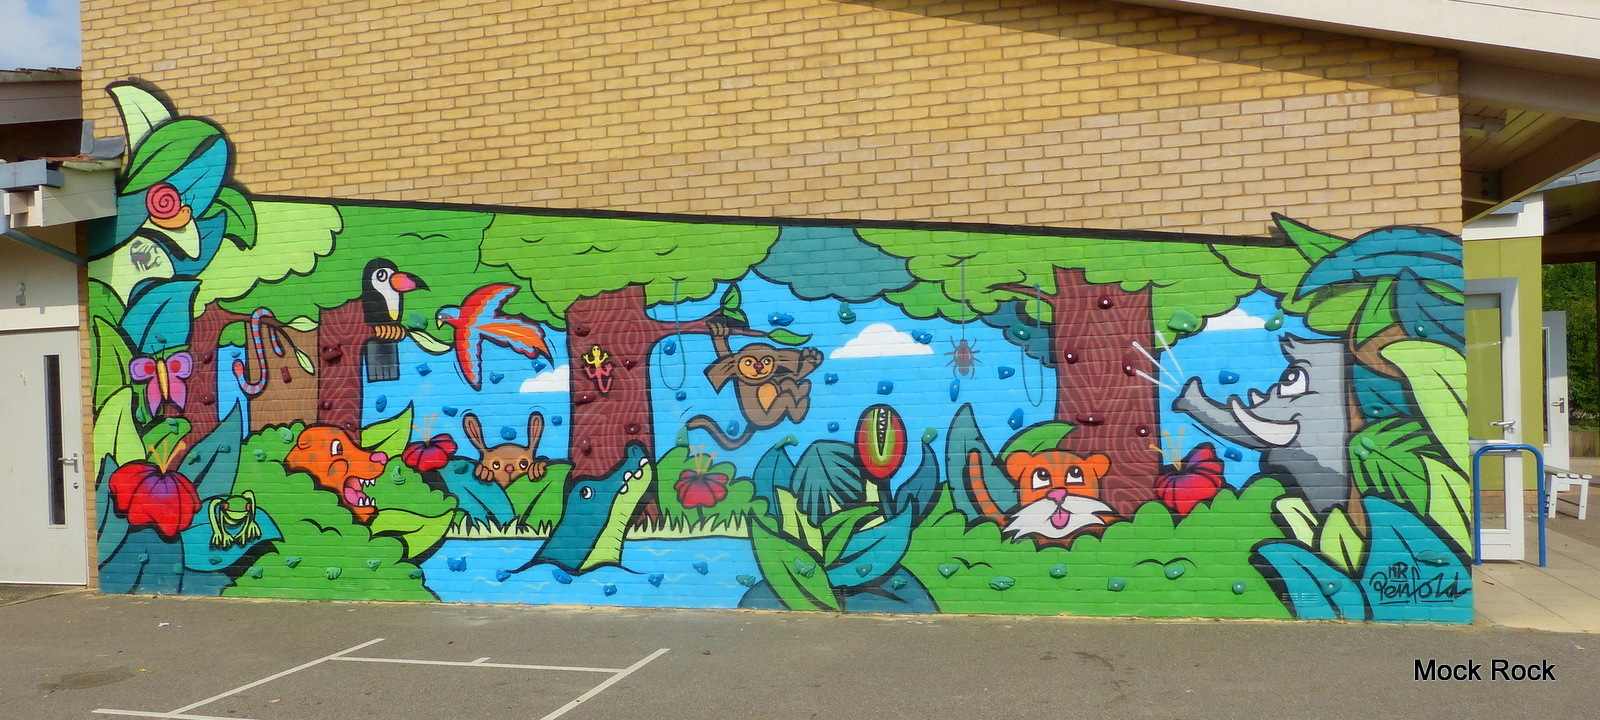 Wall Murals For Schools Primary School Catford Milton Rd Primary